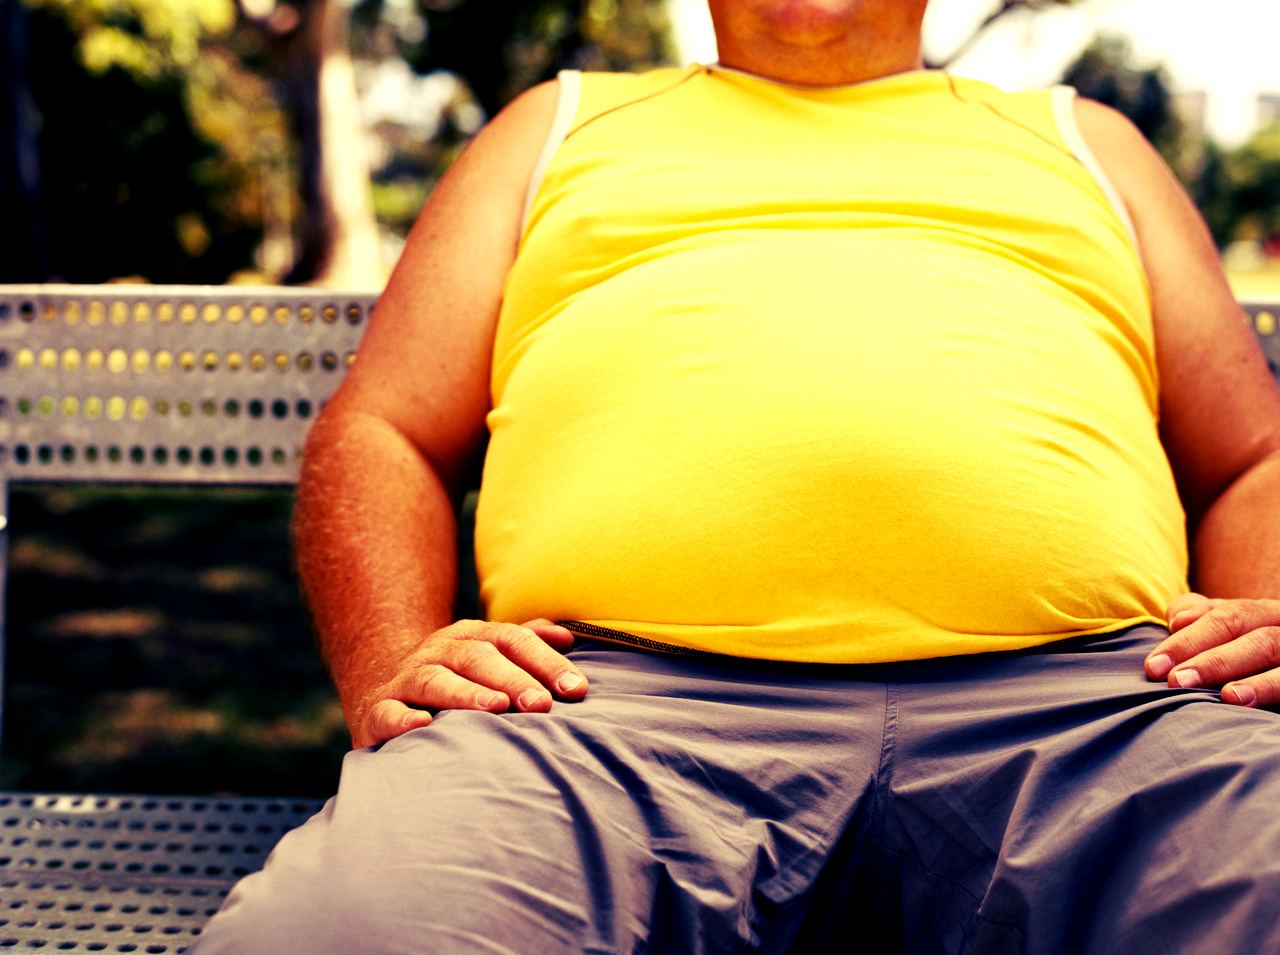 The most popular theory about what causes obesity may be very wrong